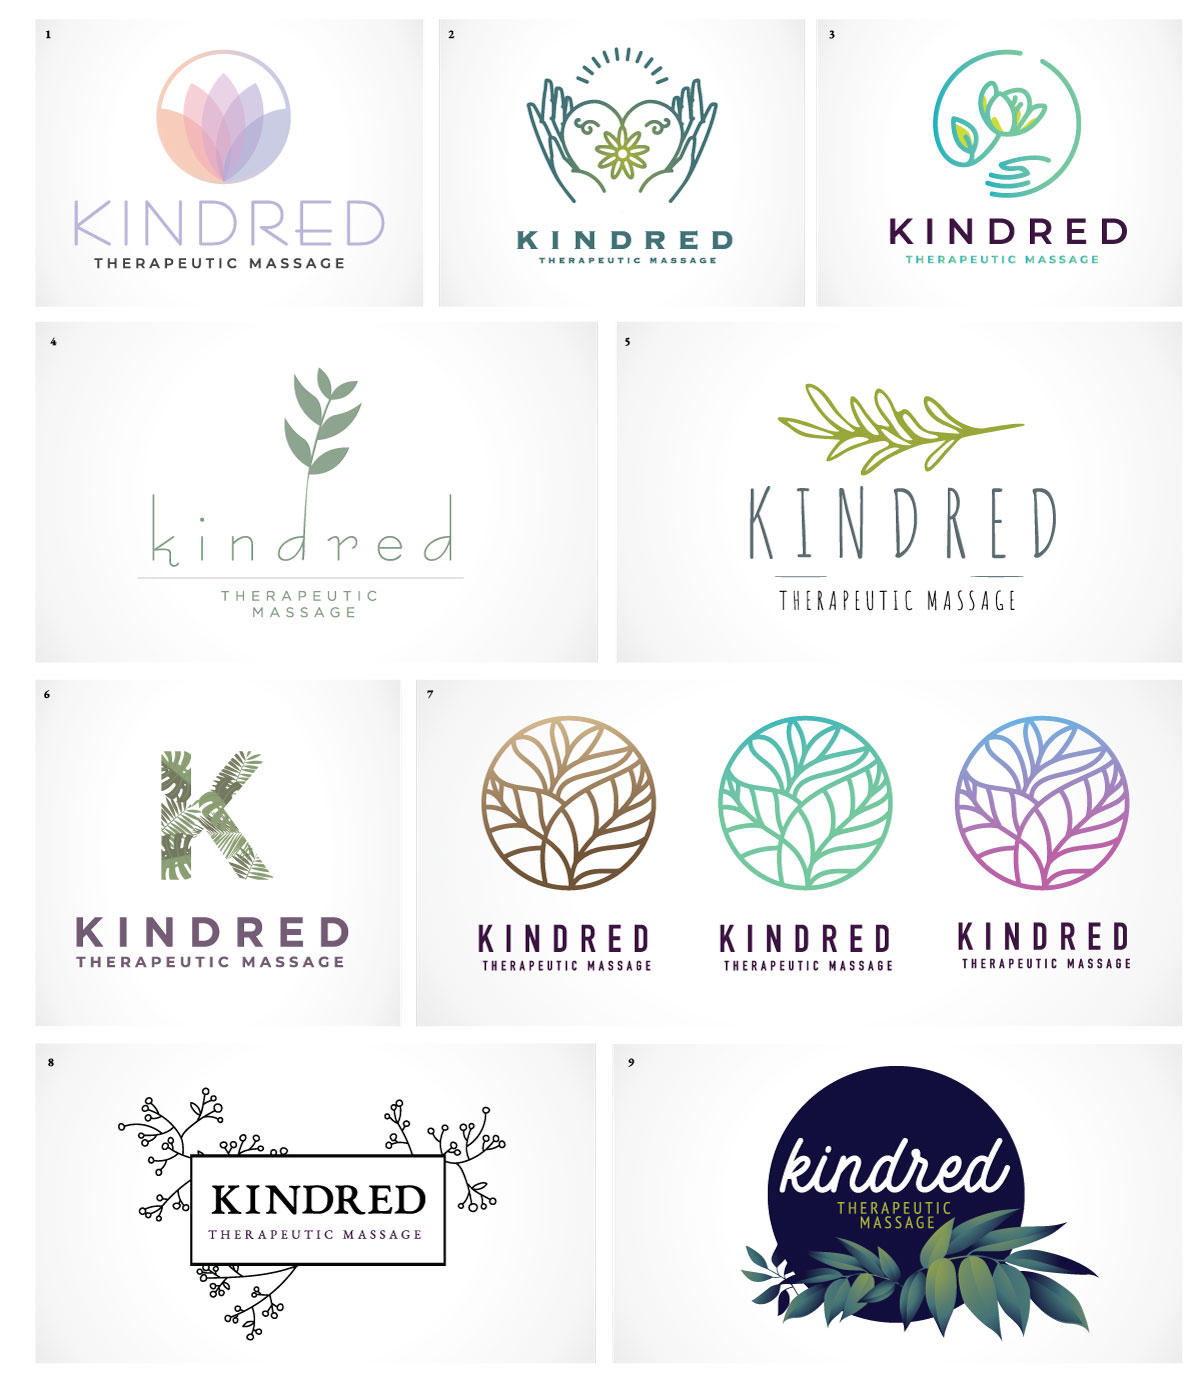 Kindred-Therapeutic-Massage-versions